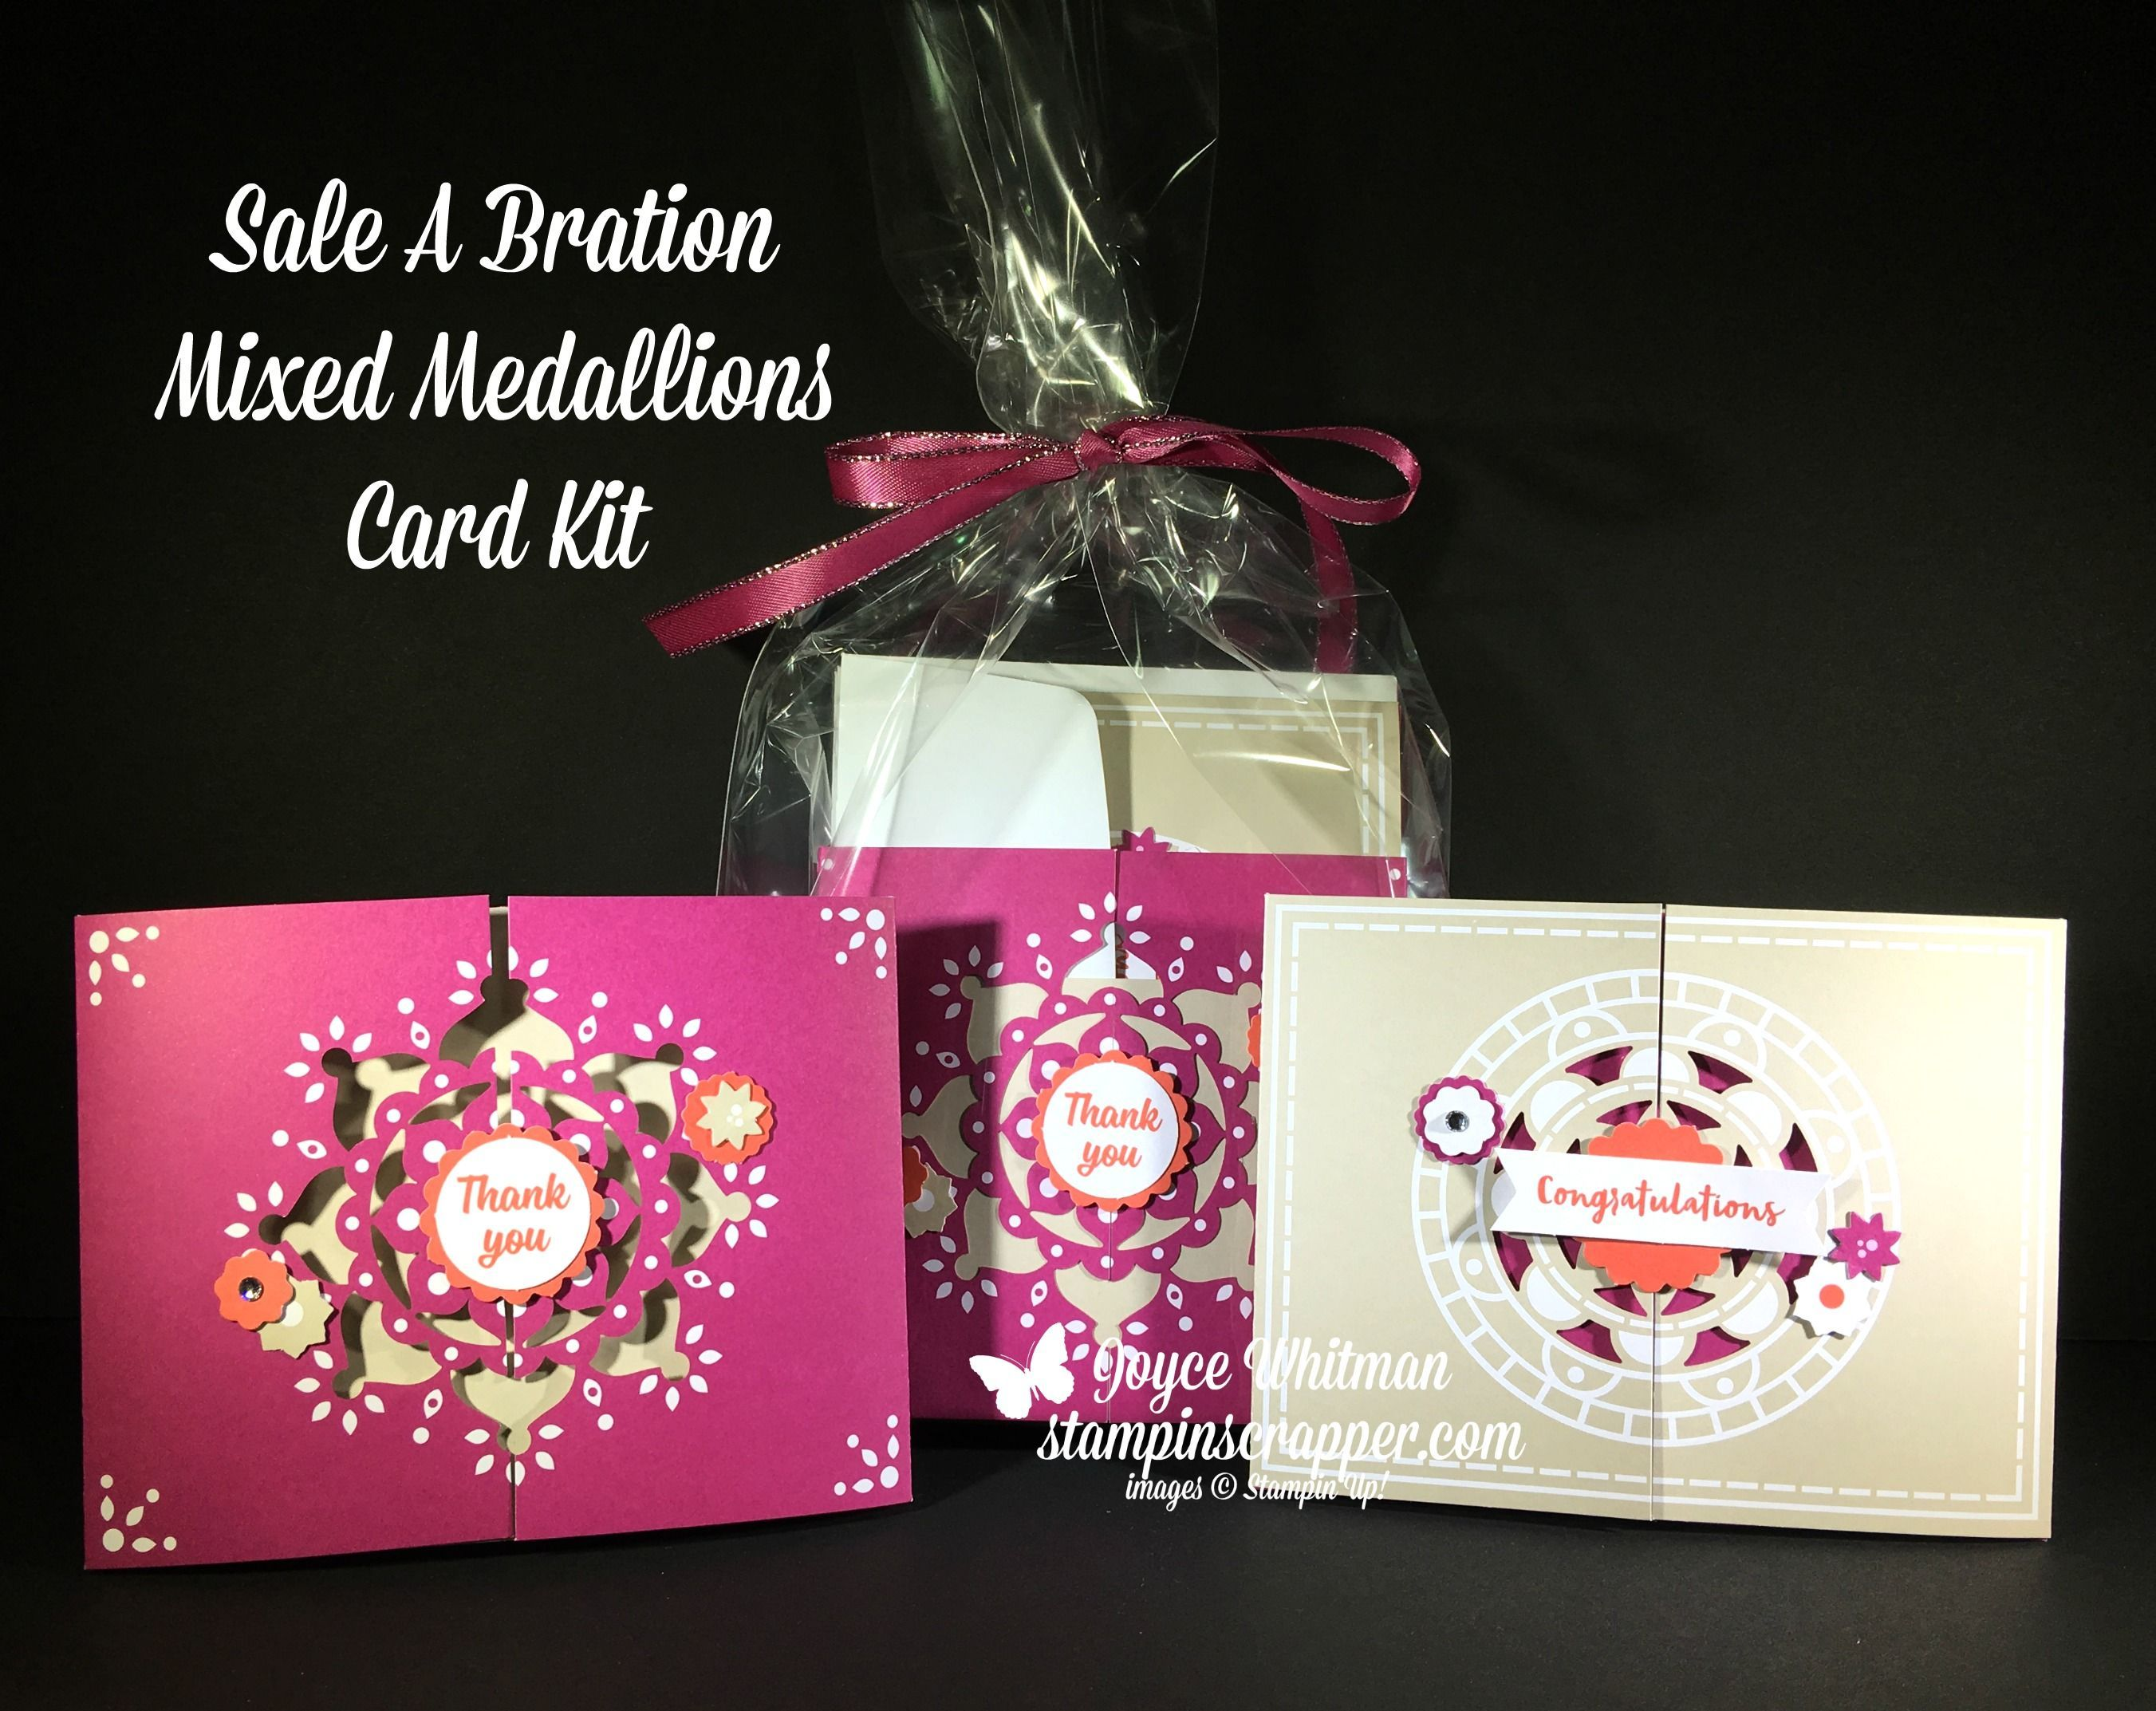 Mixed Medallions Card Kit - Sale-A-Bration   Card kit, Box and Cards